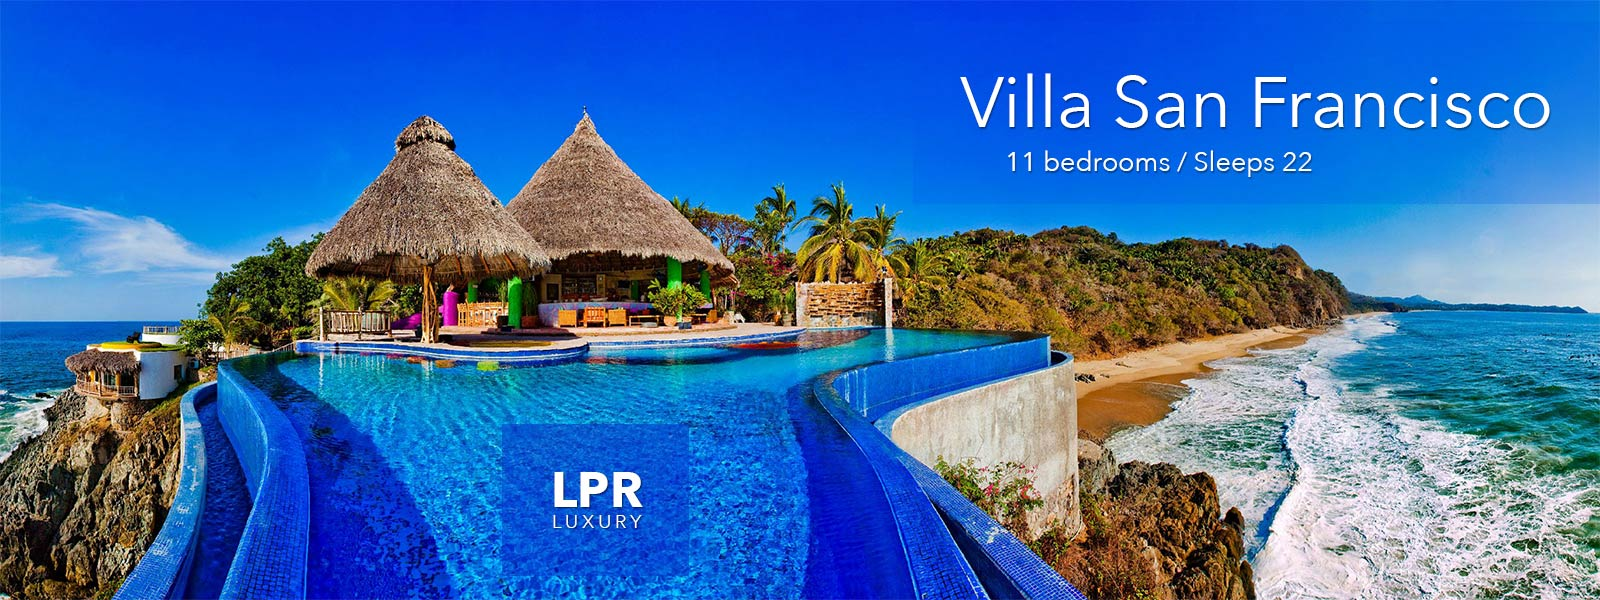 Villa San Francisco - Costa Nayarit - North of Puerto Vallarta, Mexico - Luxury real estate for sale